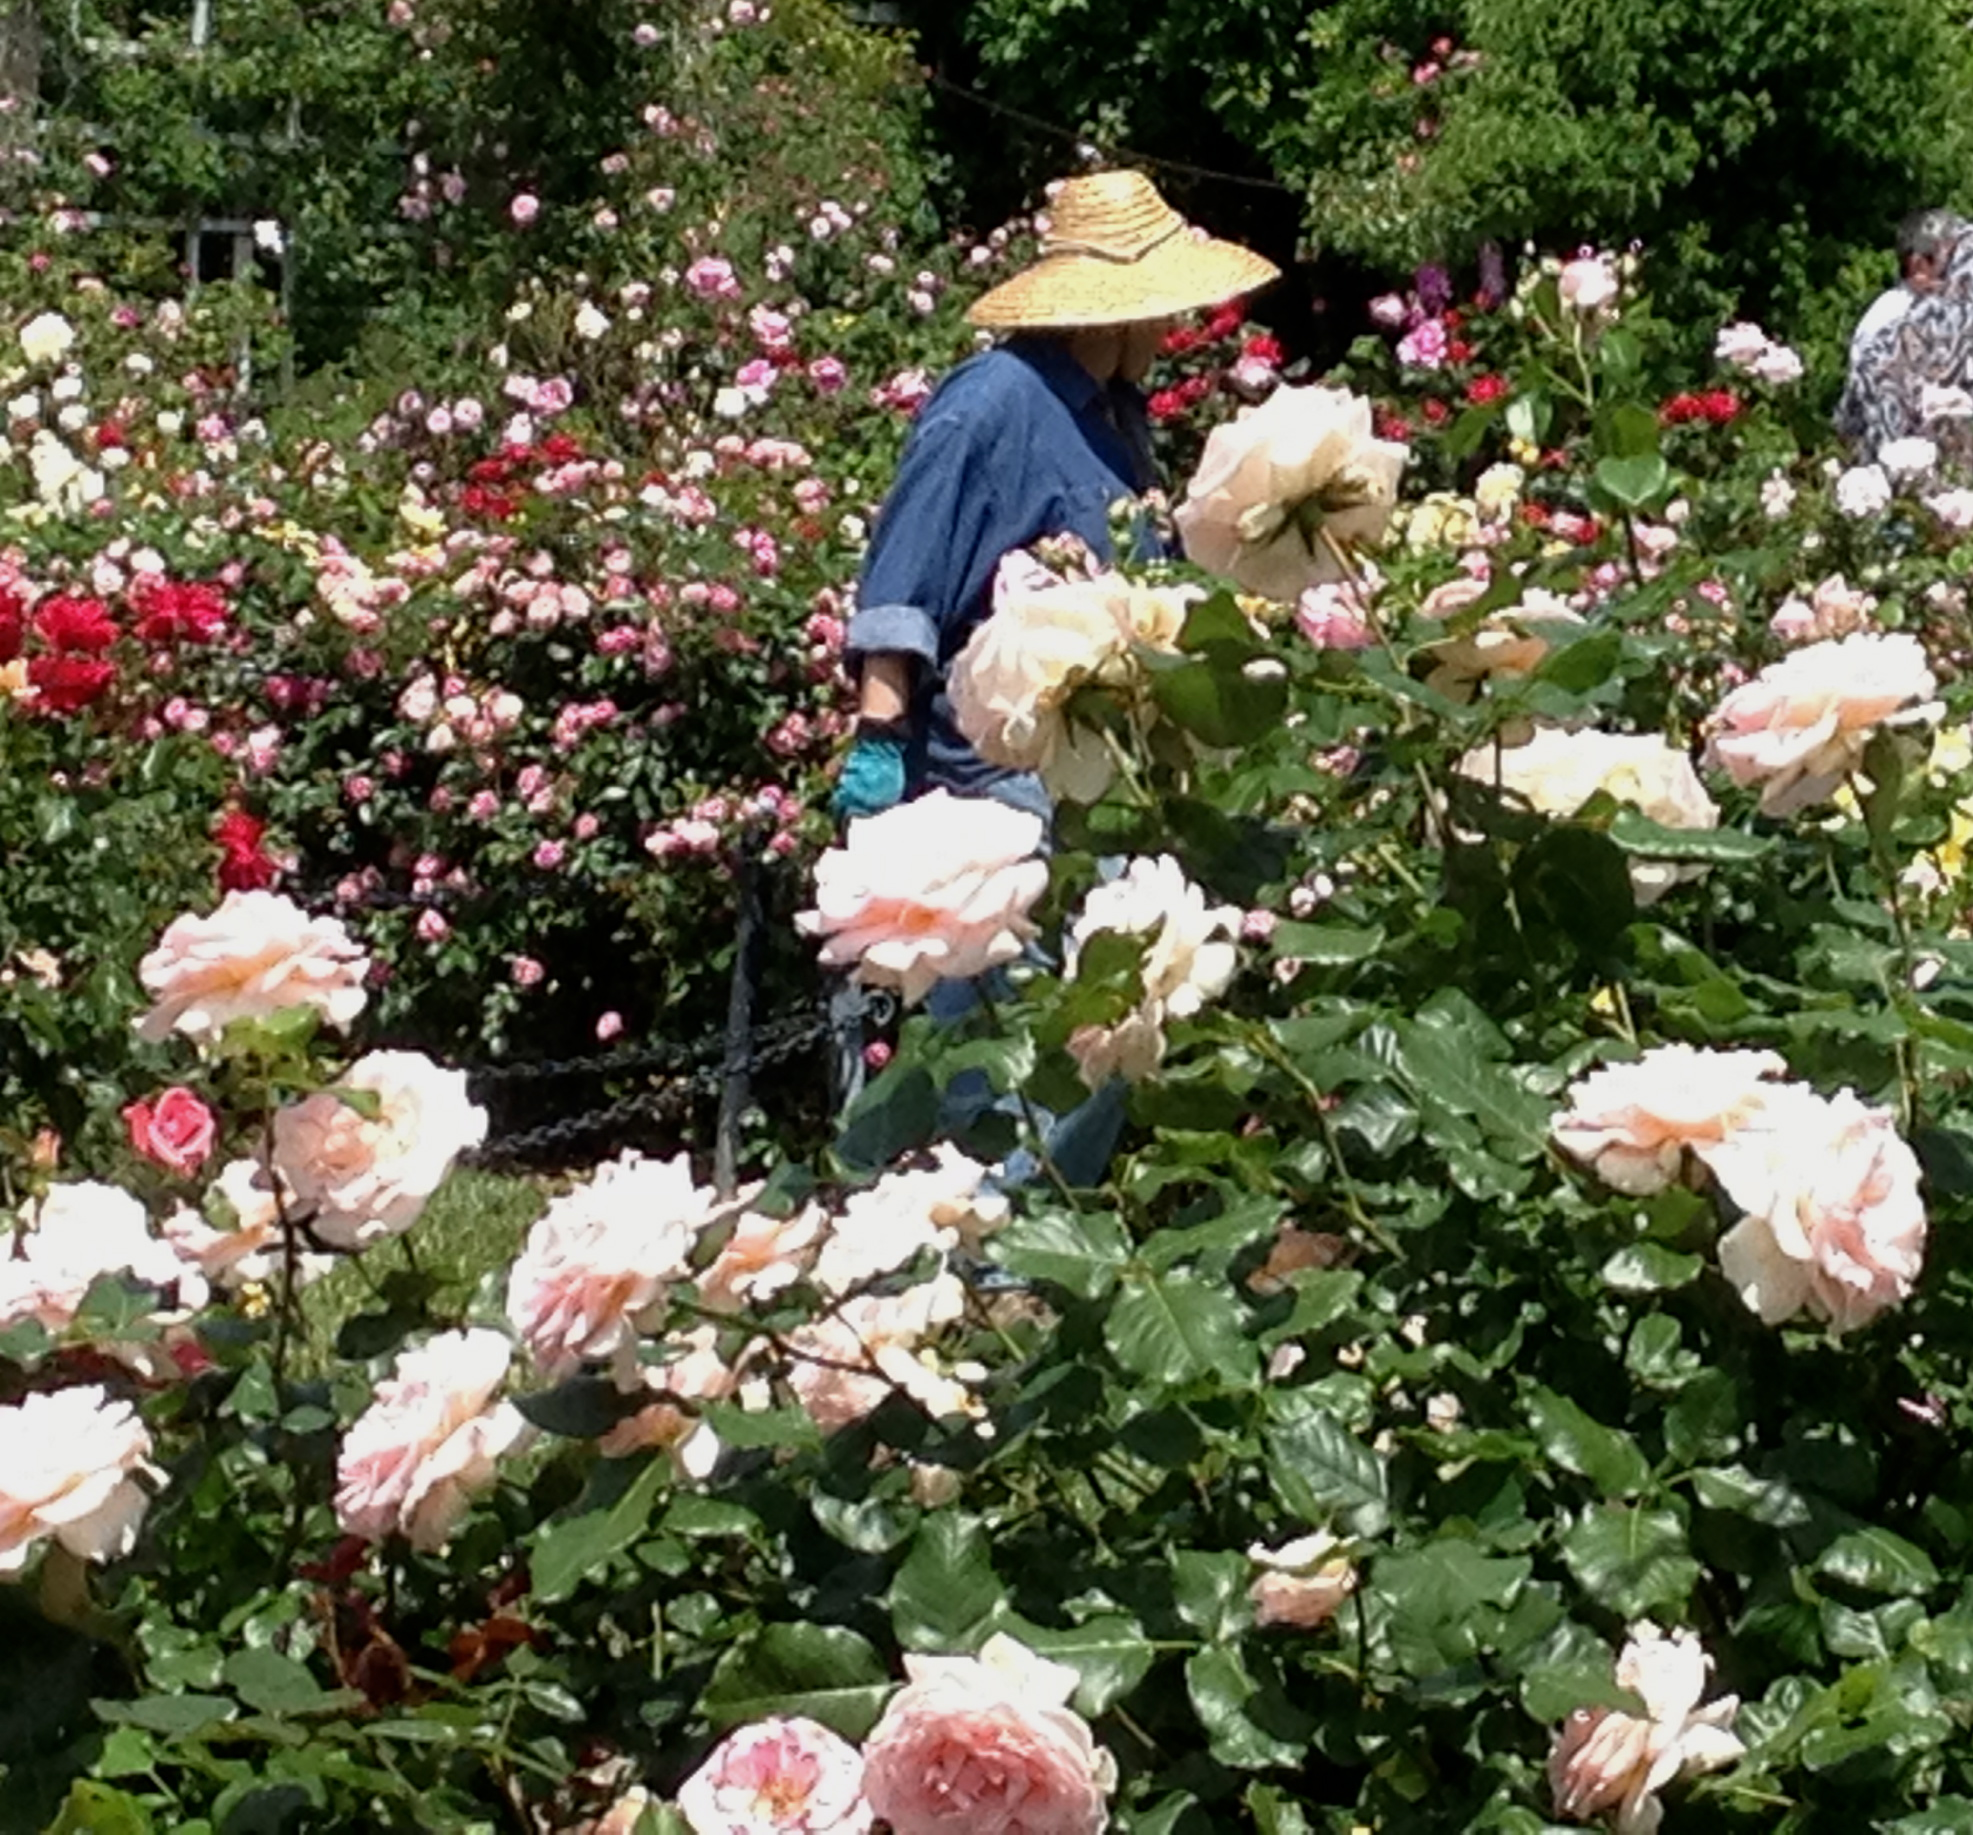 A volunteer working in the Cranford Rose Garden at peak bloom.